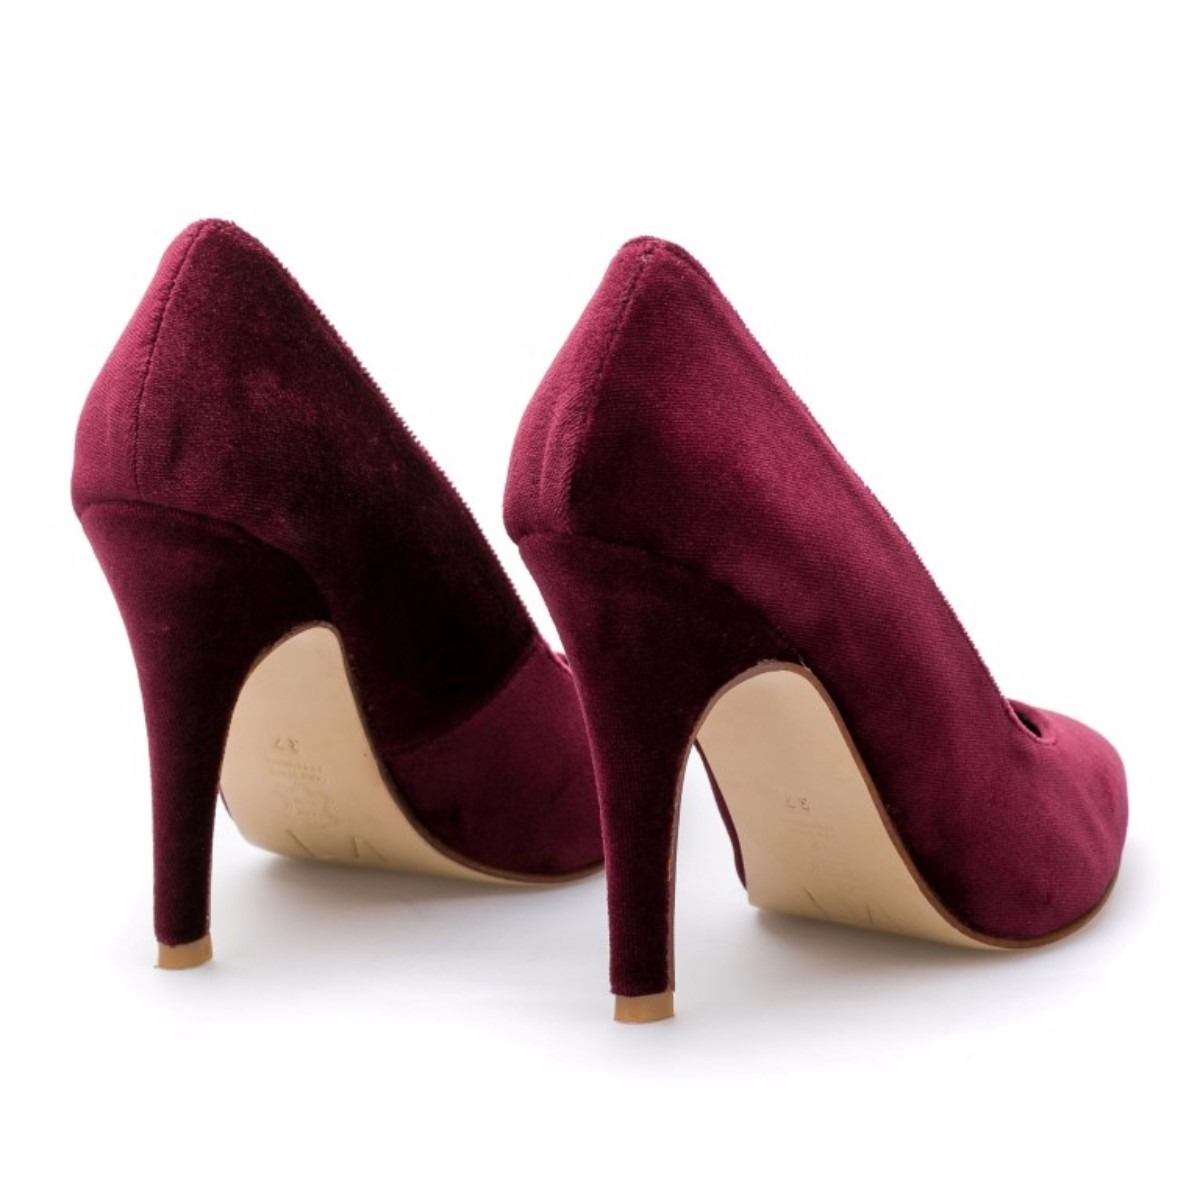 Stiletto Anne Bordeaux / SALE 50% OFF